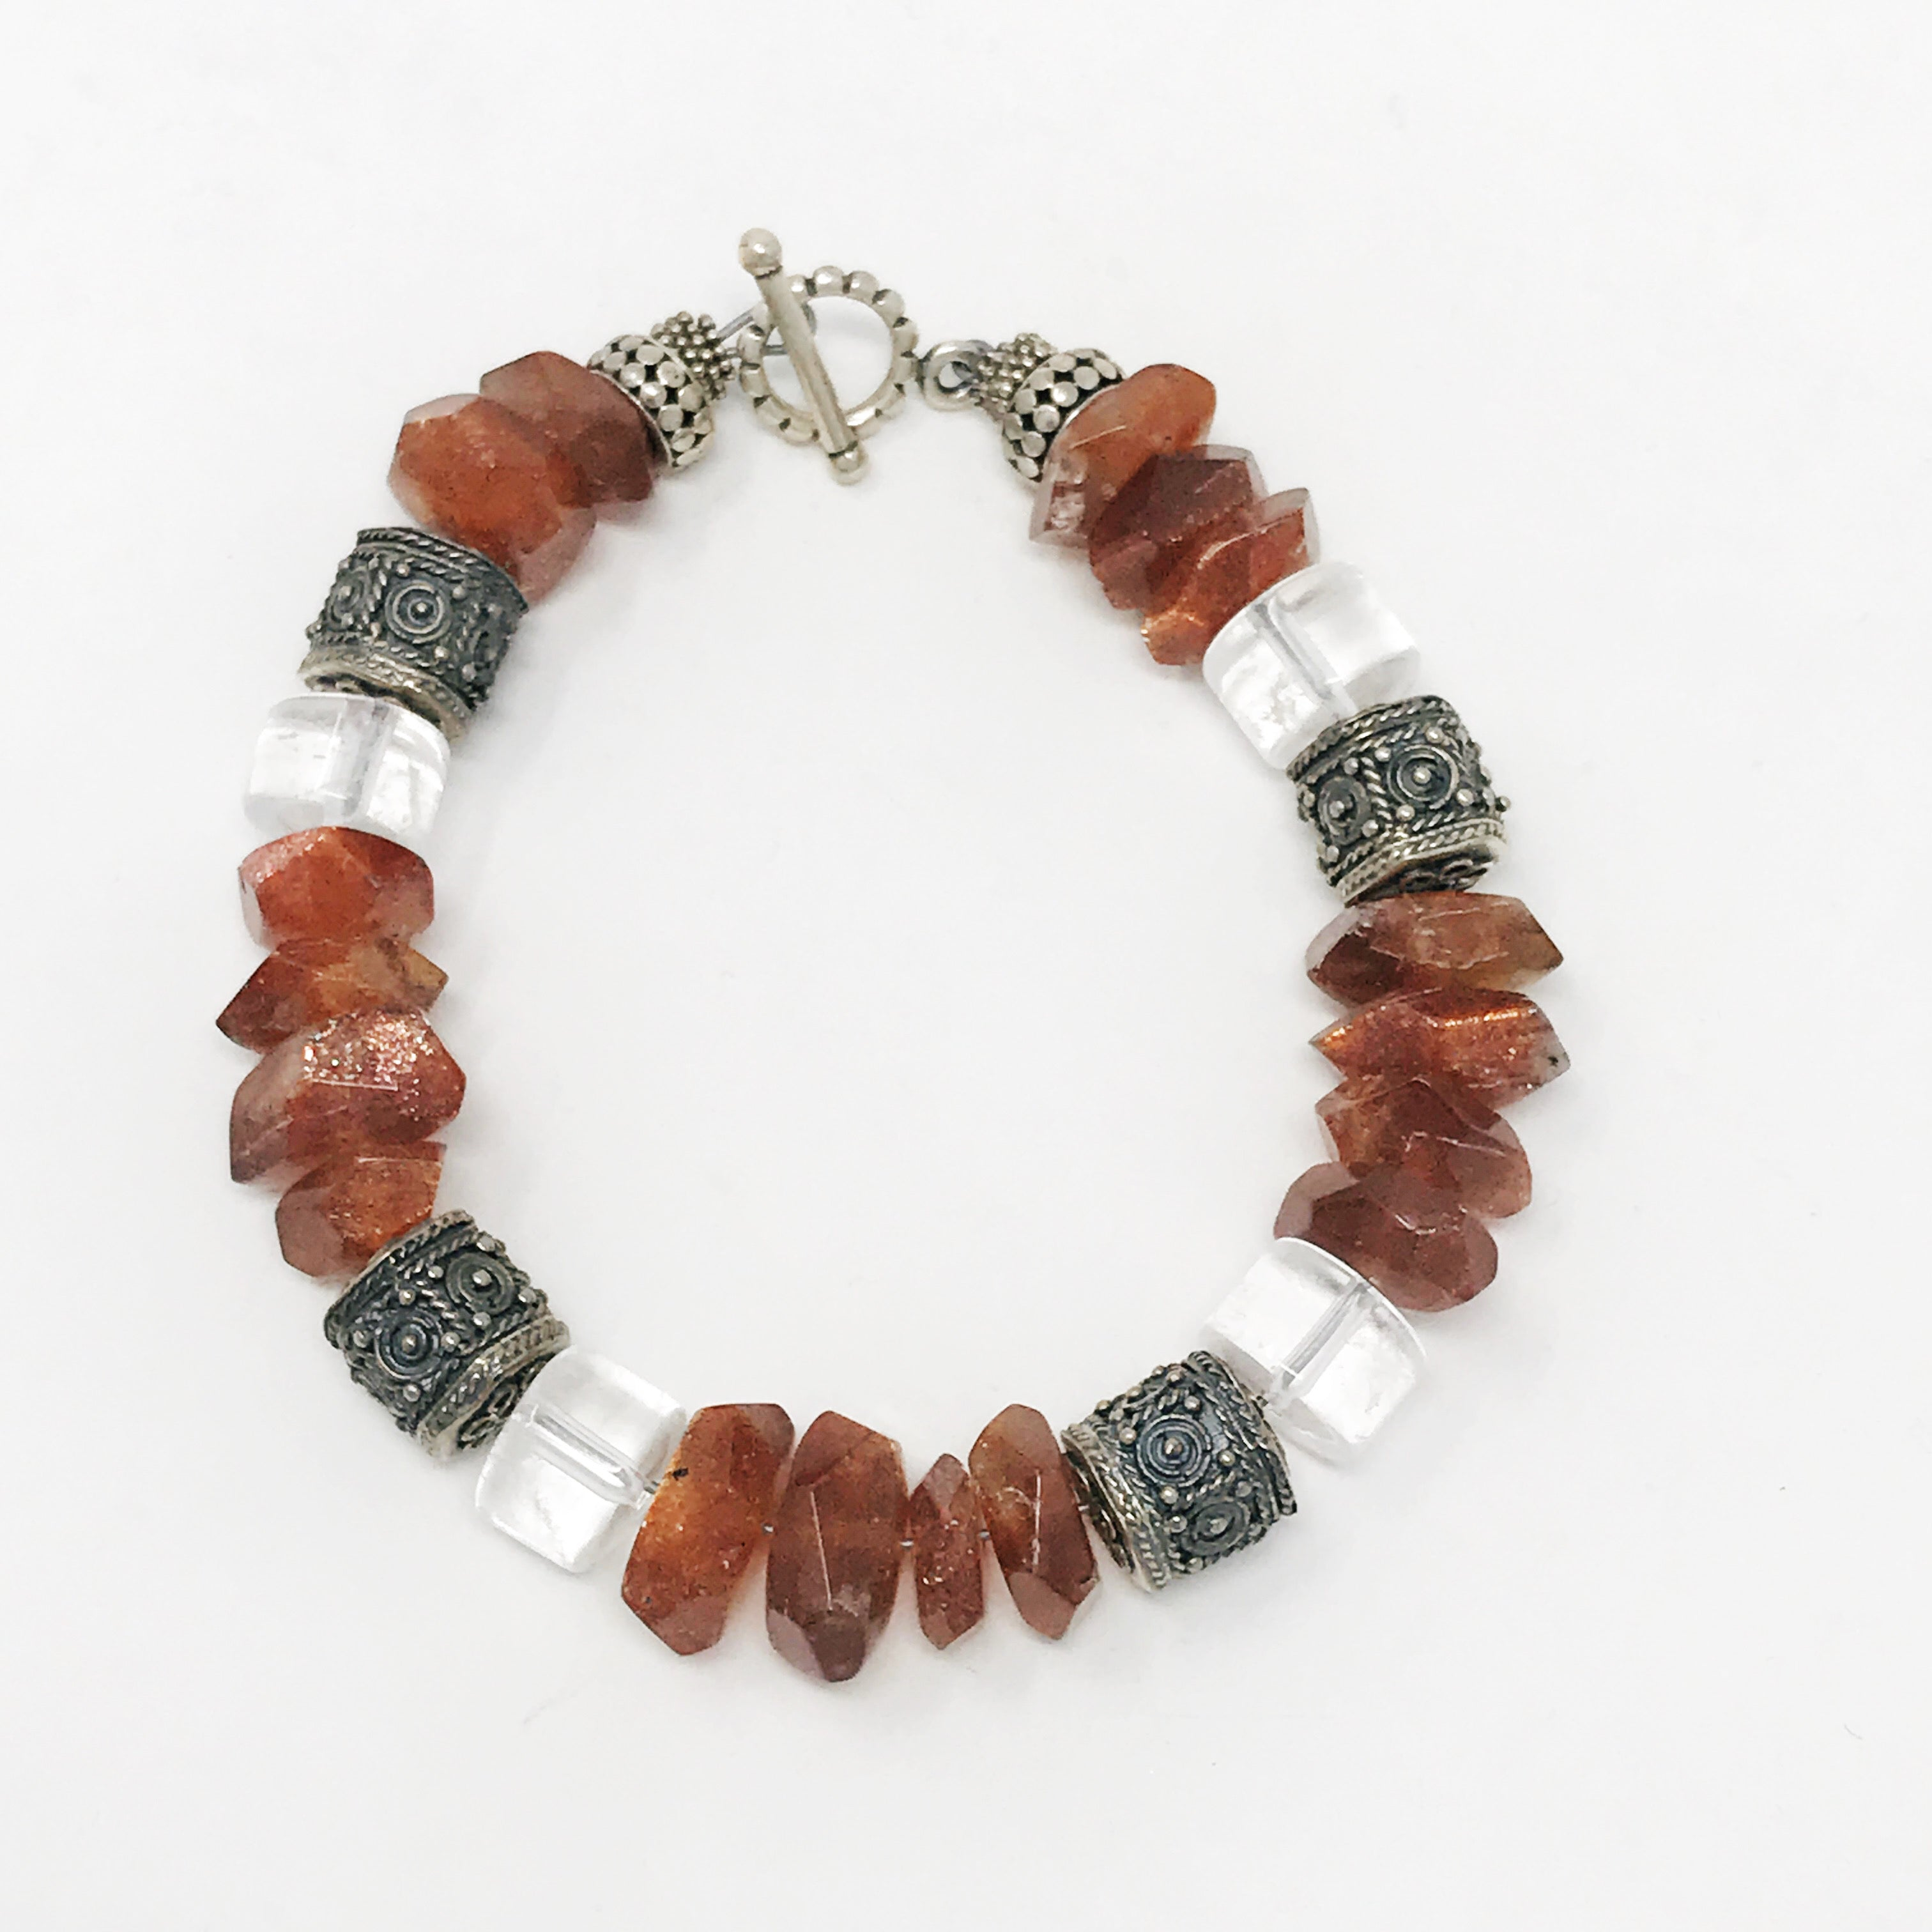 Sunsonte Quartz and sterling silver bracelet